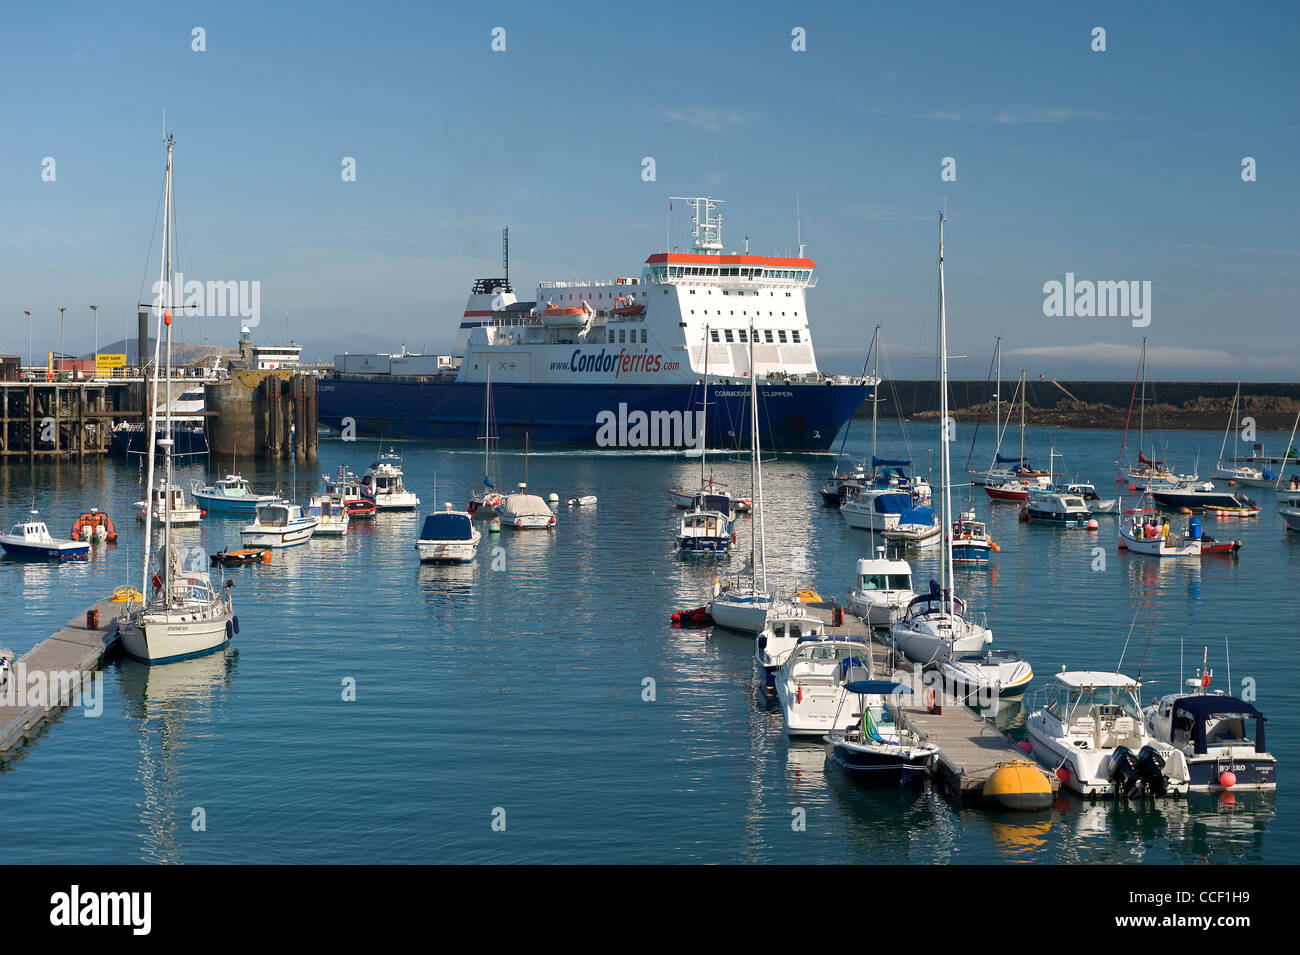 UK Channel Islands Guernsey Condor commercial shipping ferry entering St Peter Port harbour yachts in foreground Stock Photo